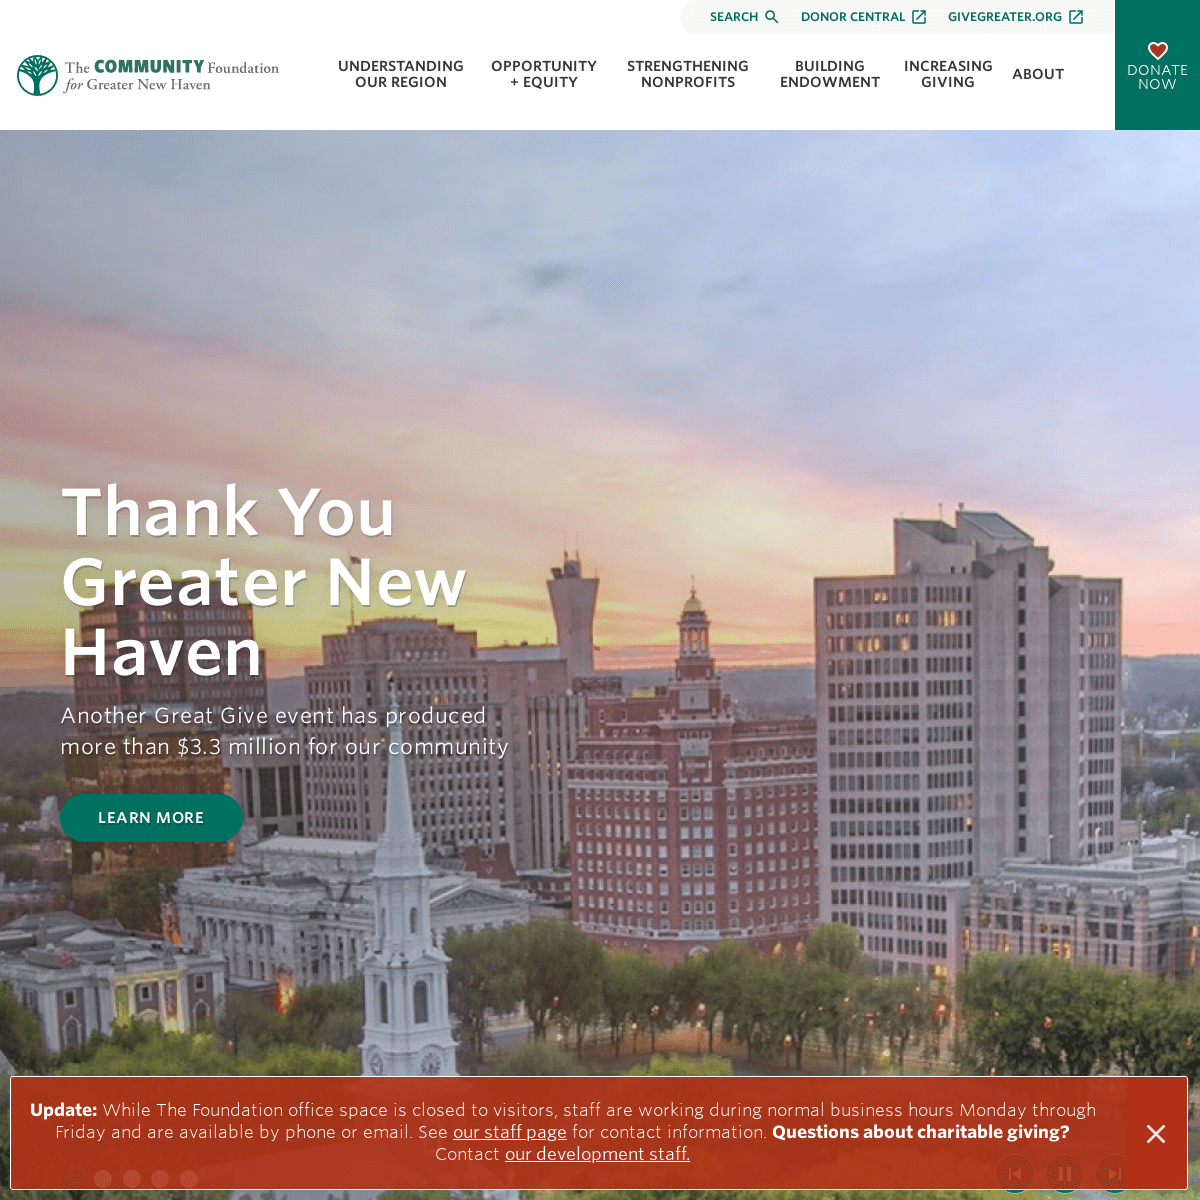 Homepage - The Community Foundation for Greater New Haven